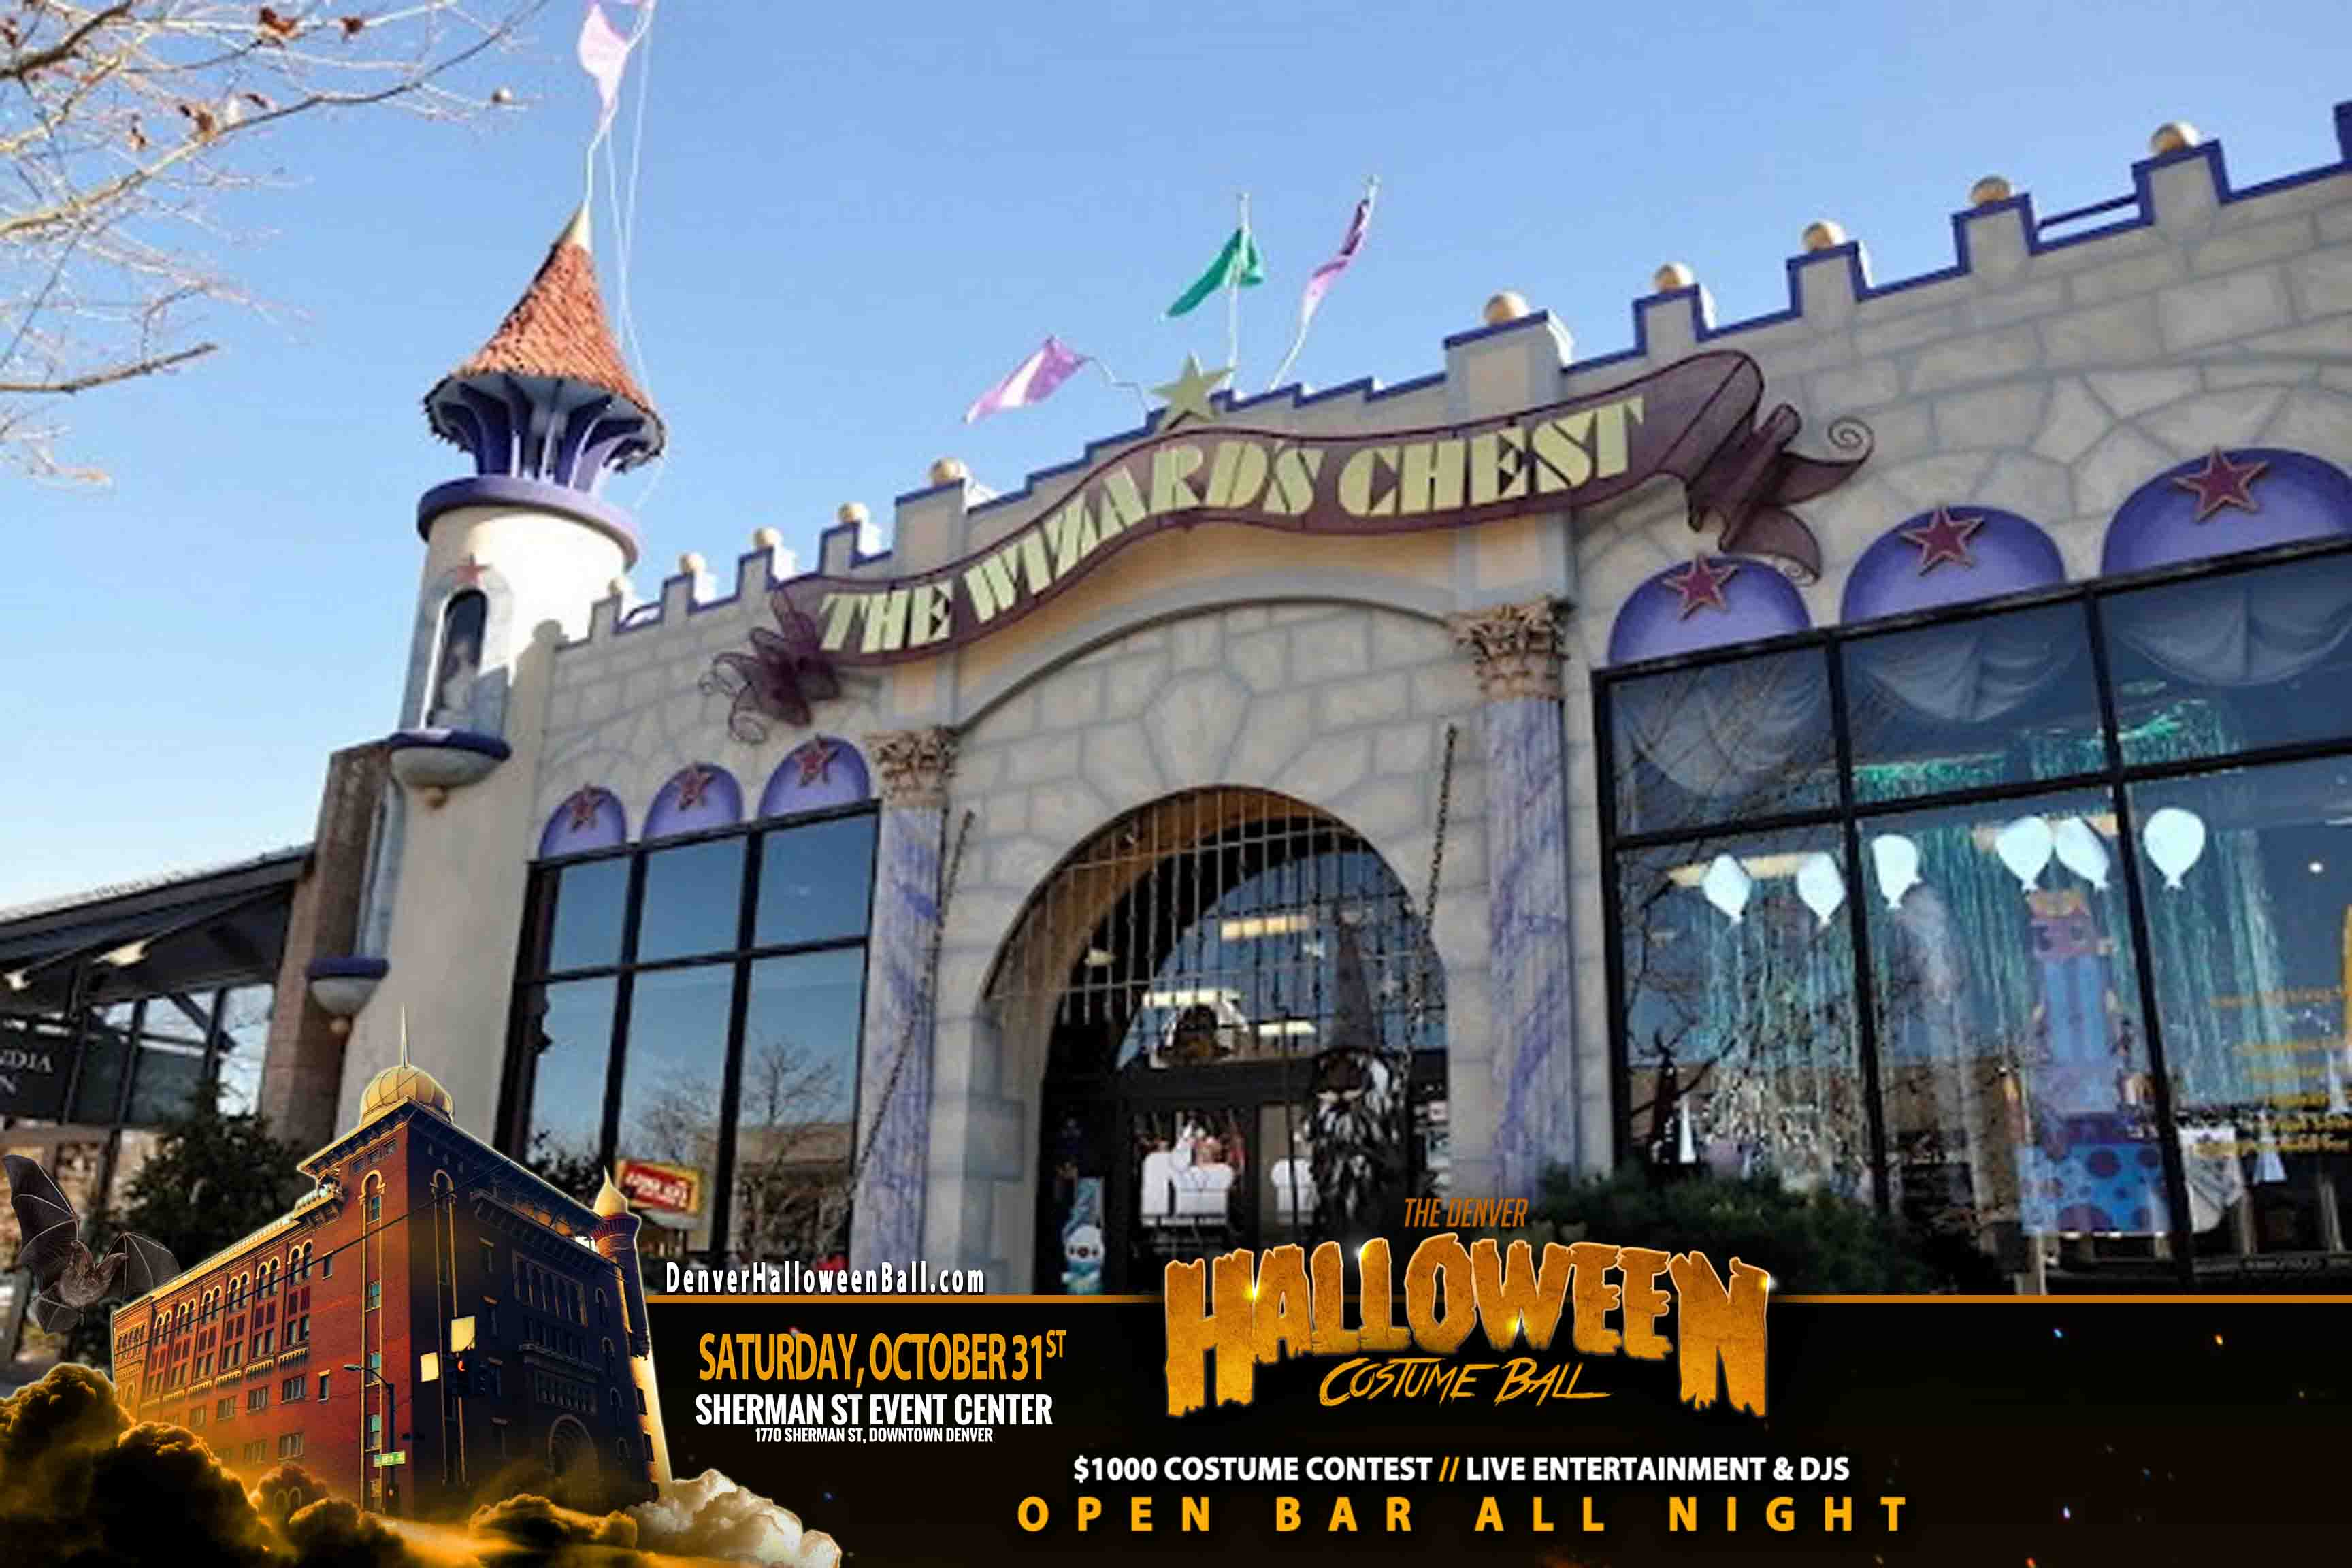 Denver Halloween Costume Stores - Denver Halloween Costume Ball 2018